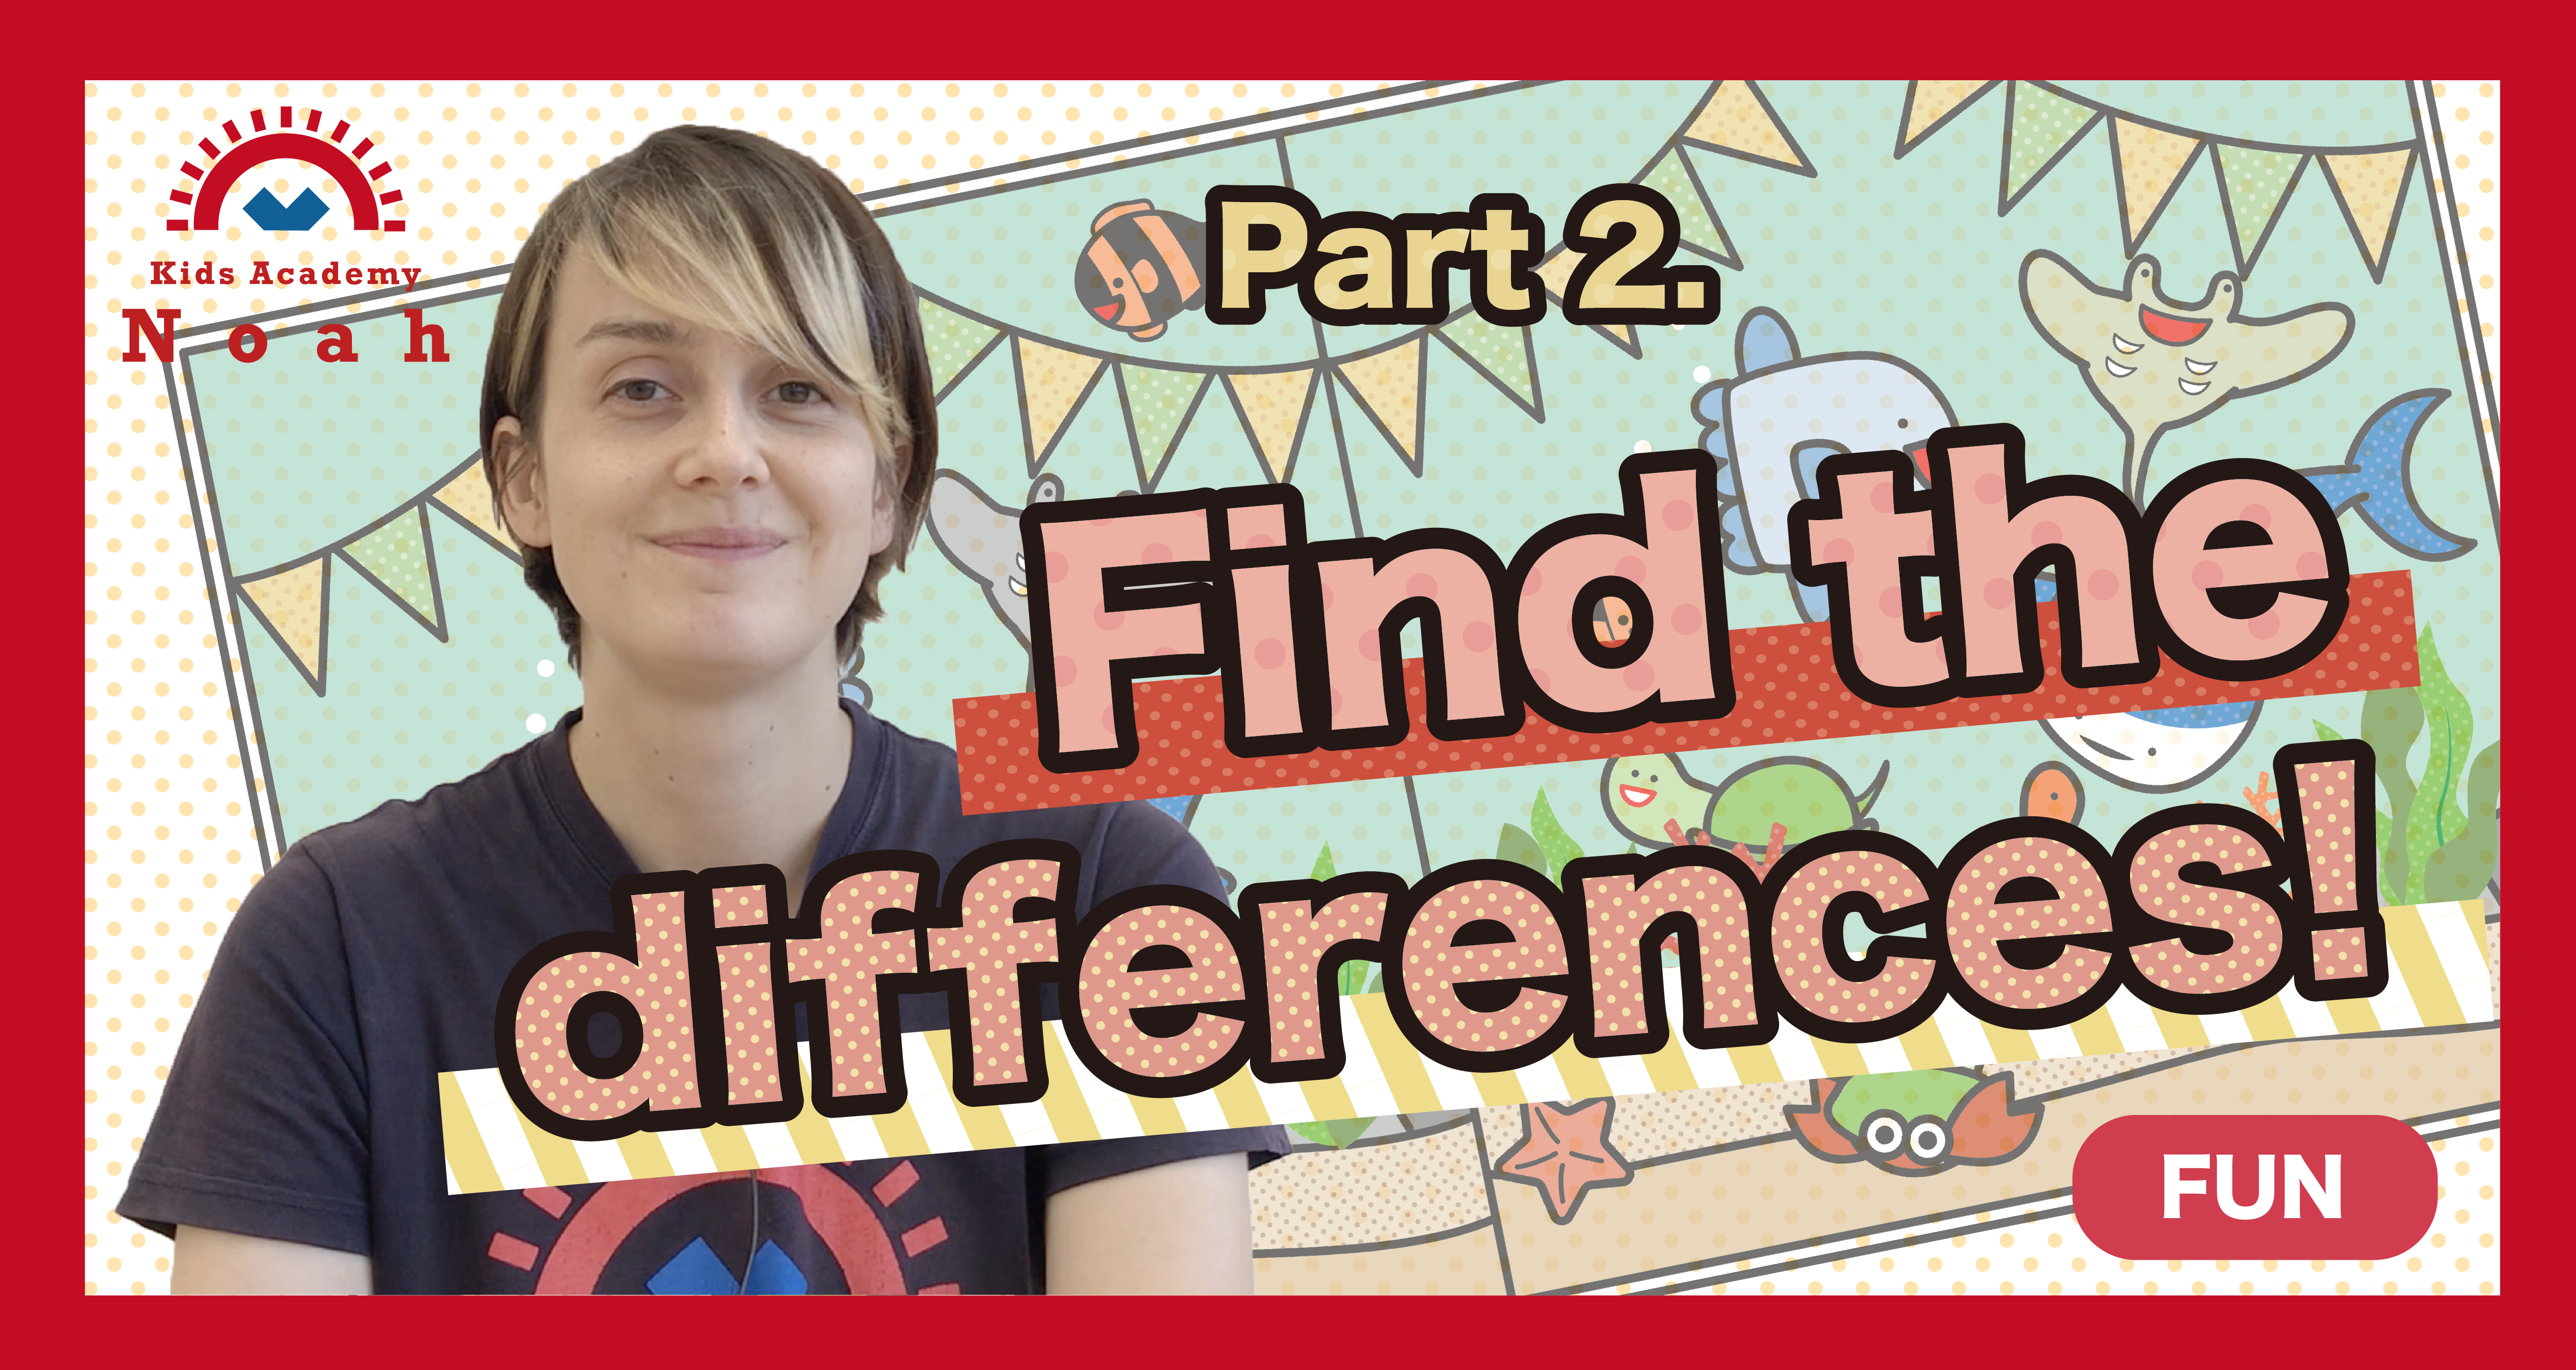 Find the differences②-FUN-